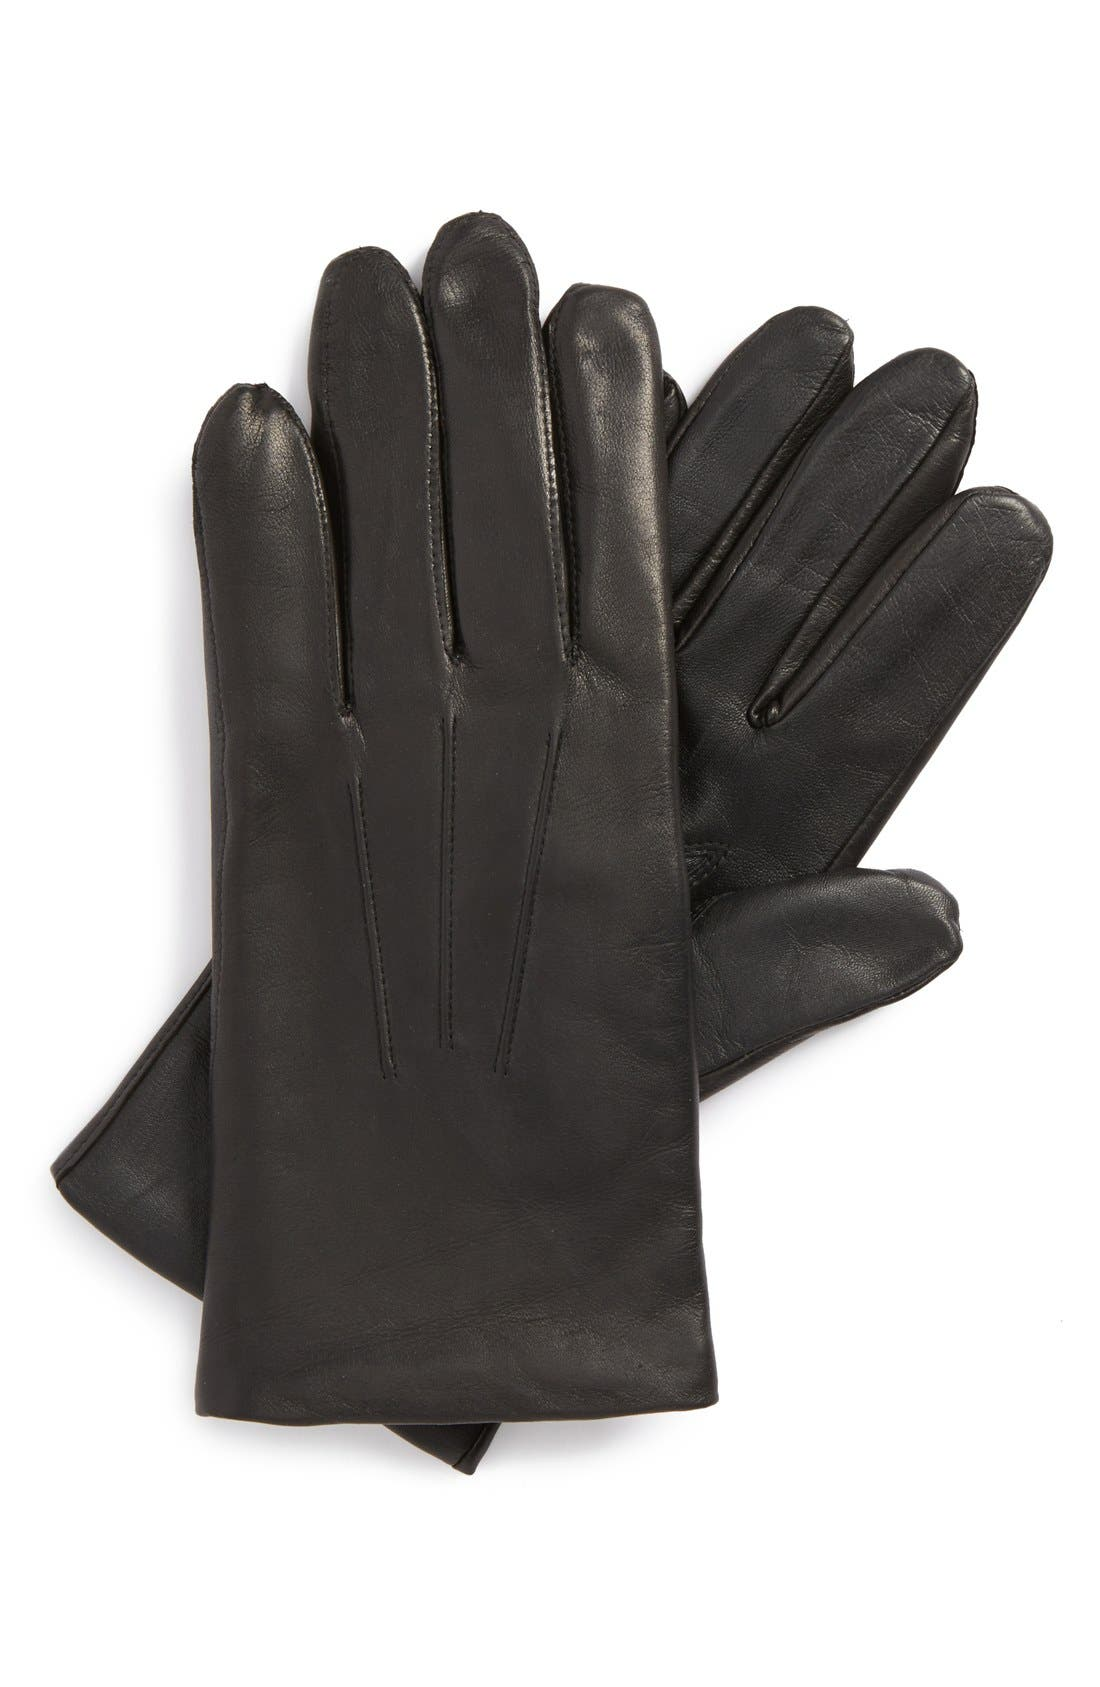 Leather Tech Gloves,                             Main thumbnail 1, color,